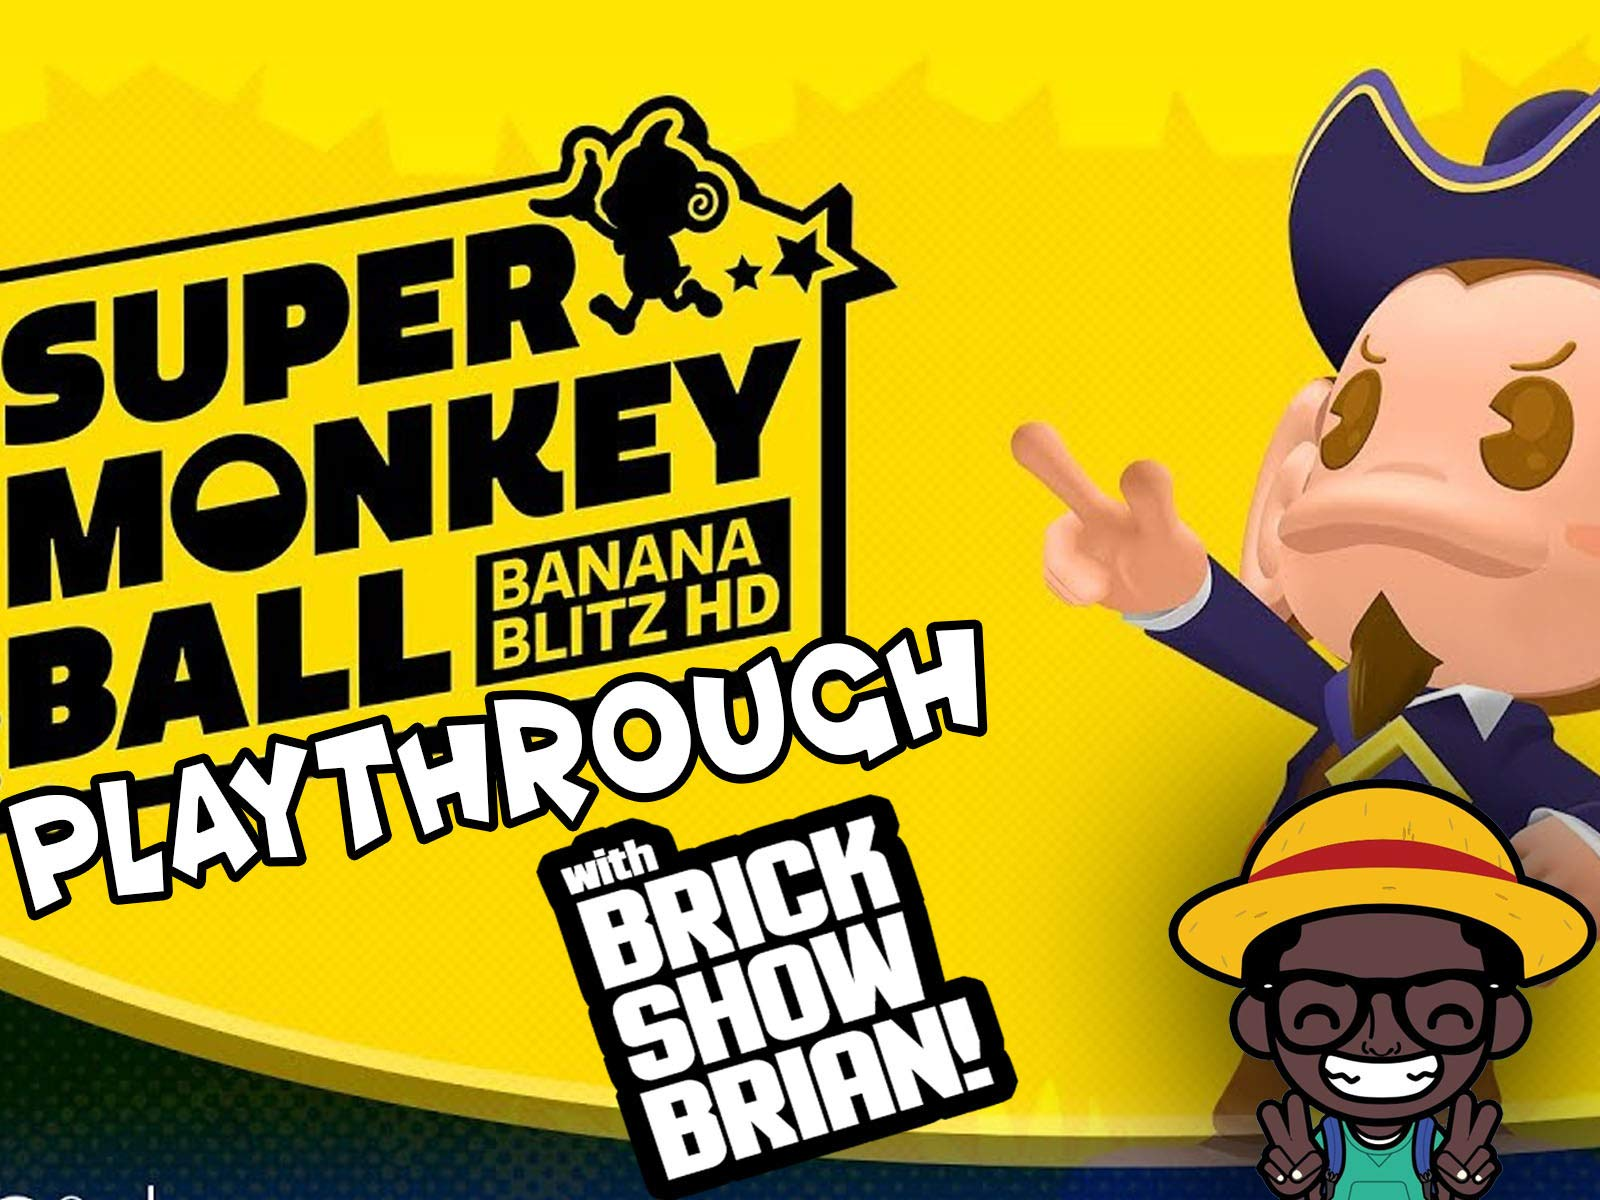 Super Monkey Ball Banana Blitz HD Playthrough With Brick Show Brian on Amazon Prime Video UK